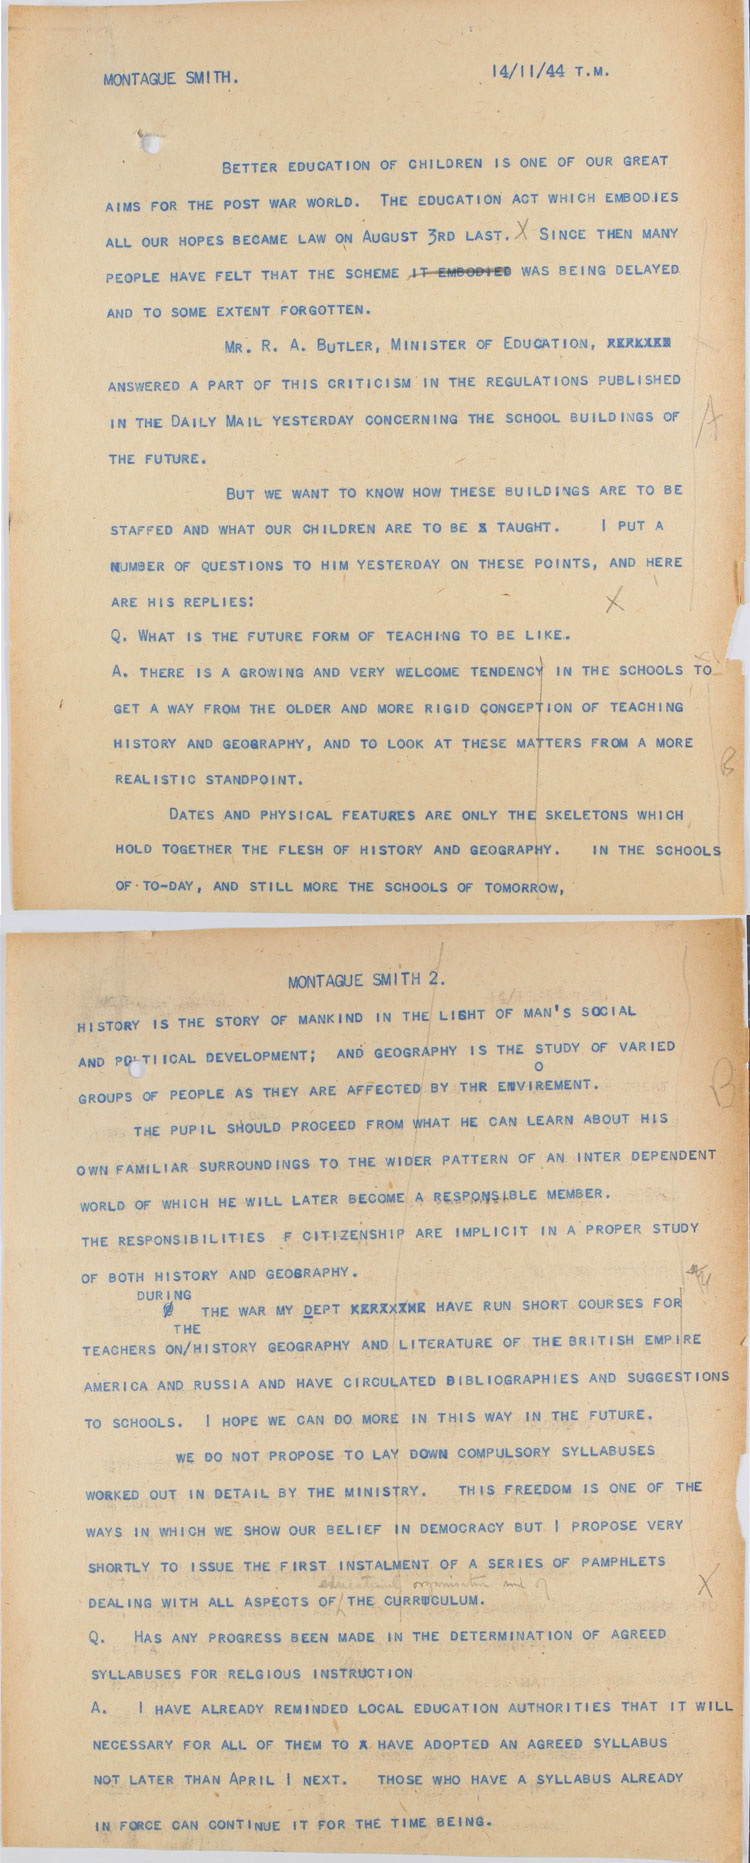 Extract from a transcript for an interview with RAB Butler and Richard Montague Smith, a reporter from The Daily Mail, 14th November 1944 (ED 121/202)